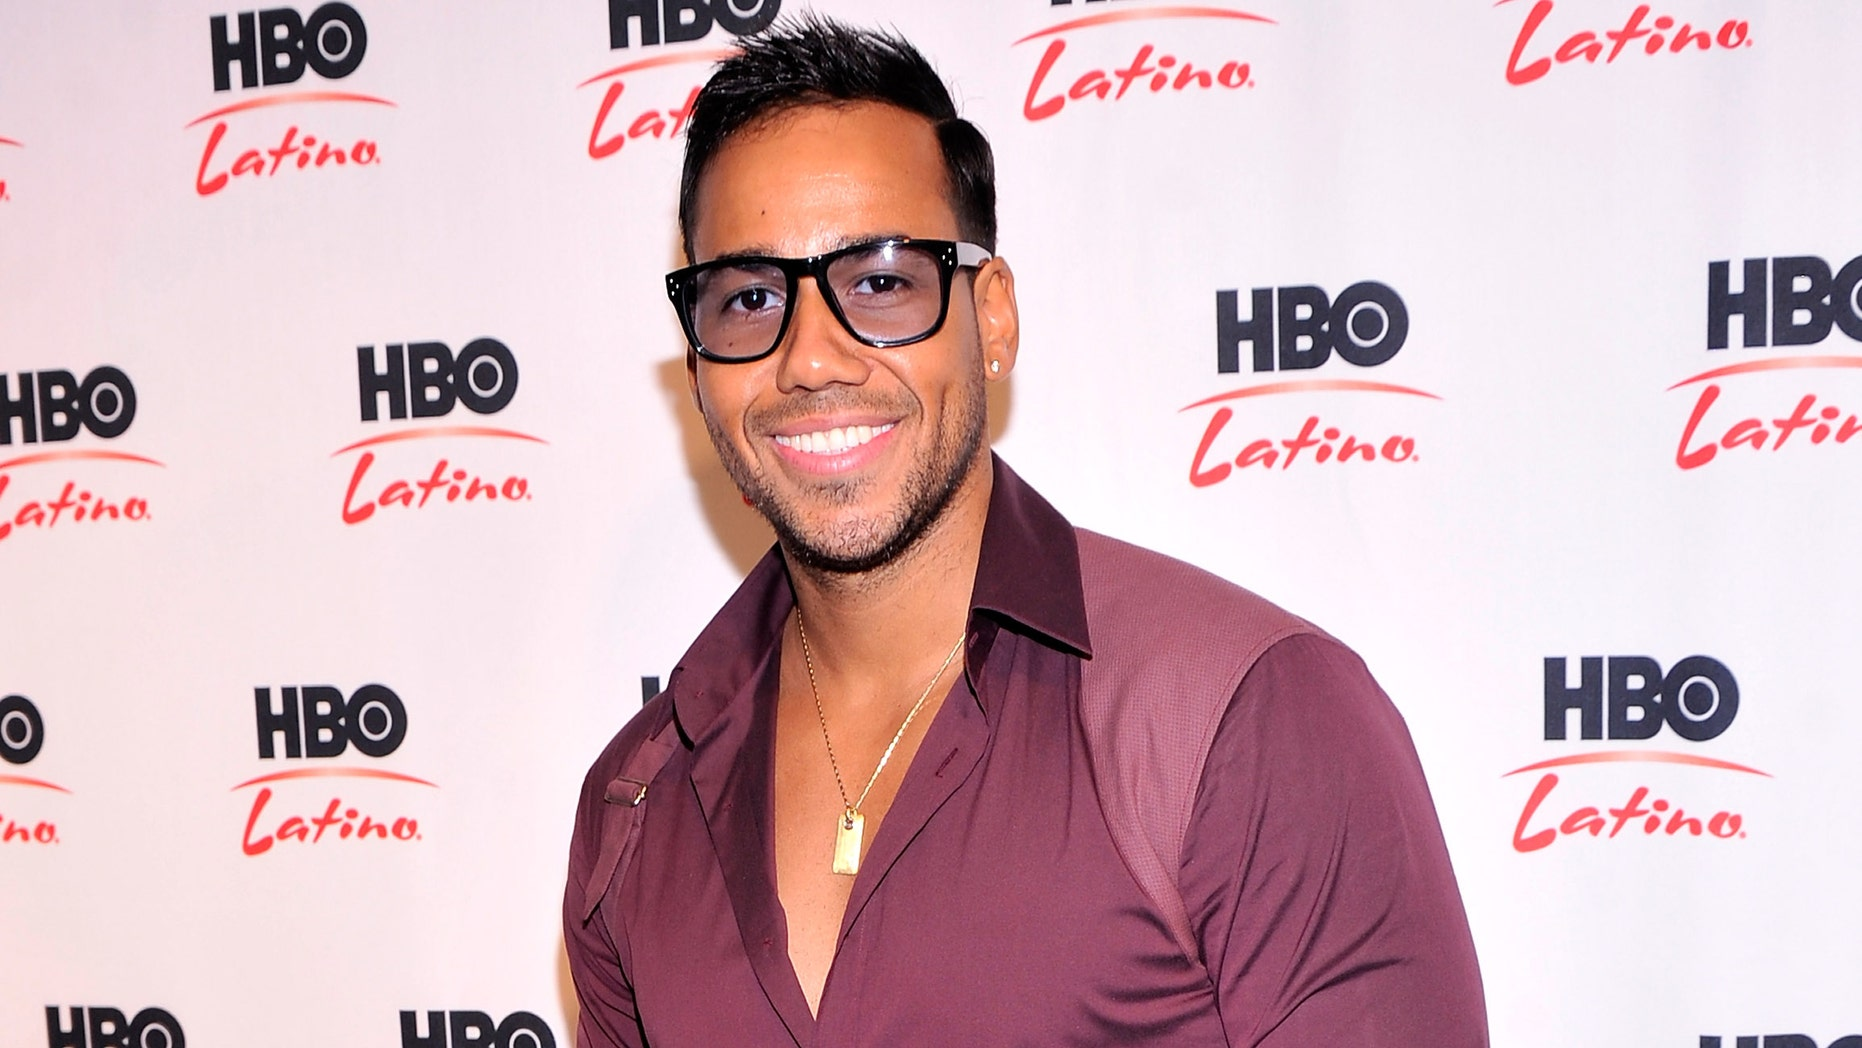 Romeo Santos attends a press event celebrating his concert special on April 30, 2013 in New York City.